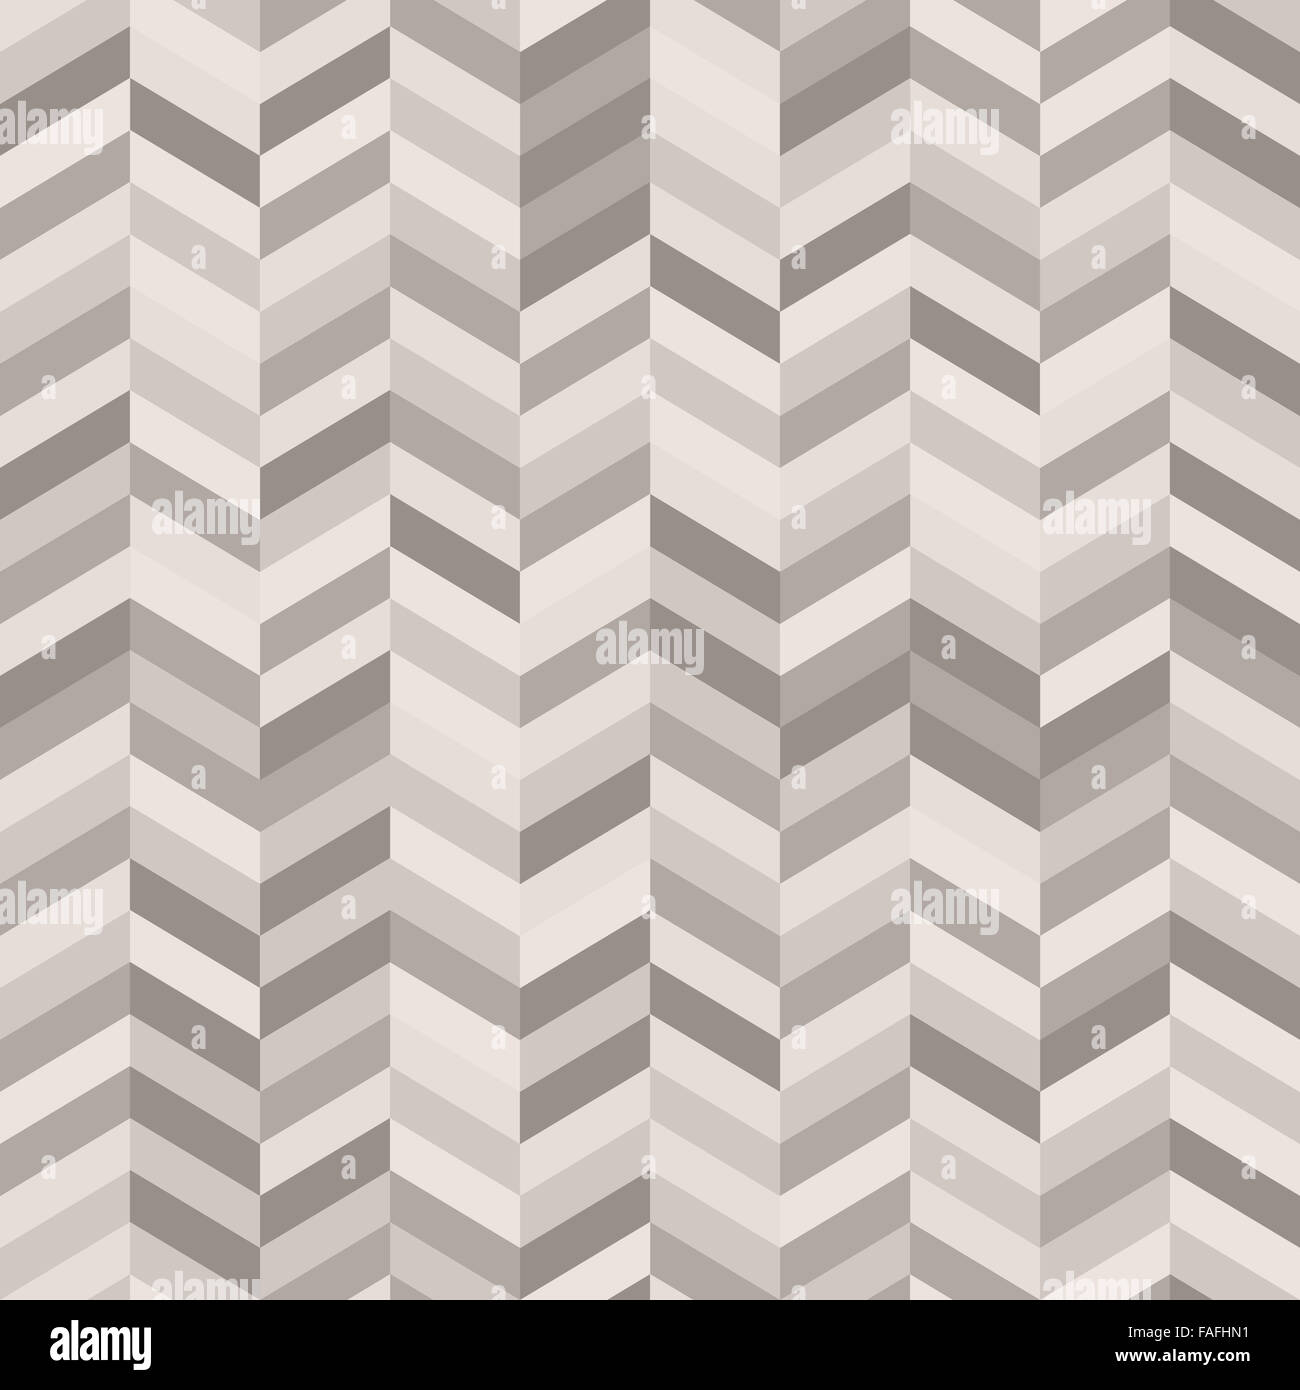 Zig Zag Abstract Background in Shades of Warm Gray - Stock Image